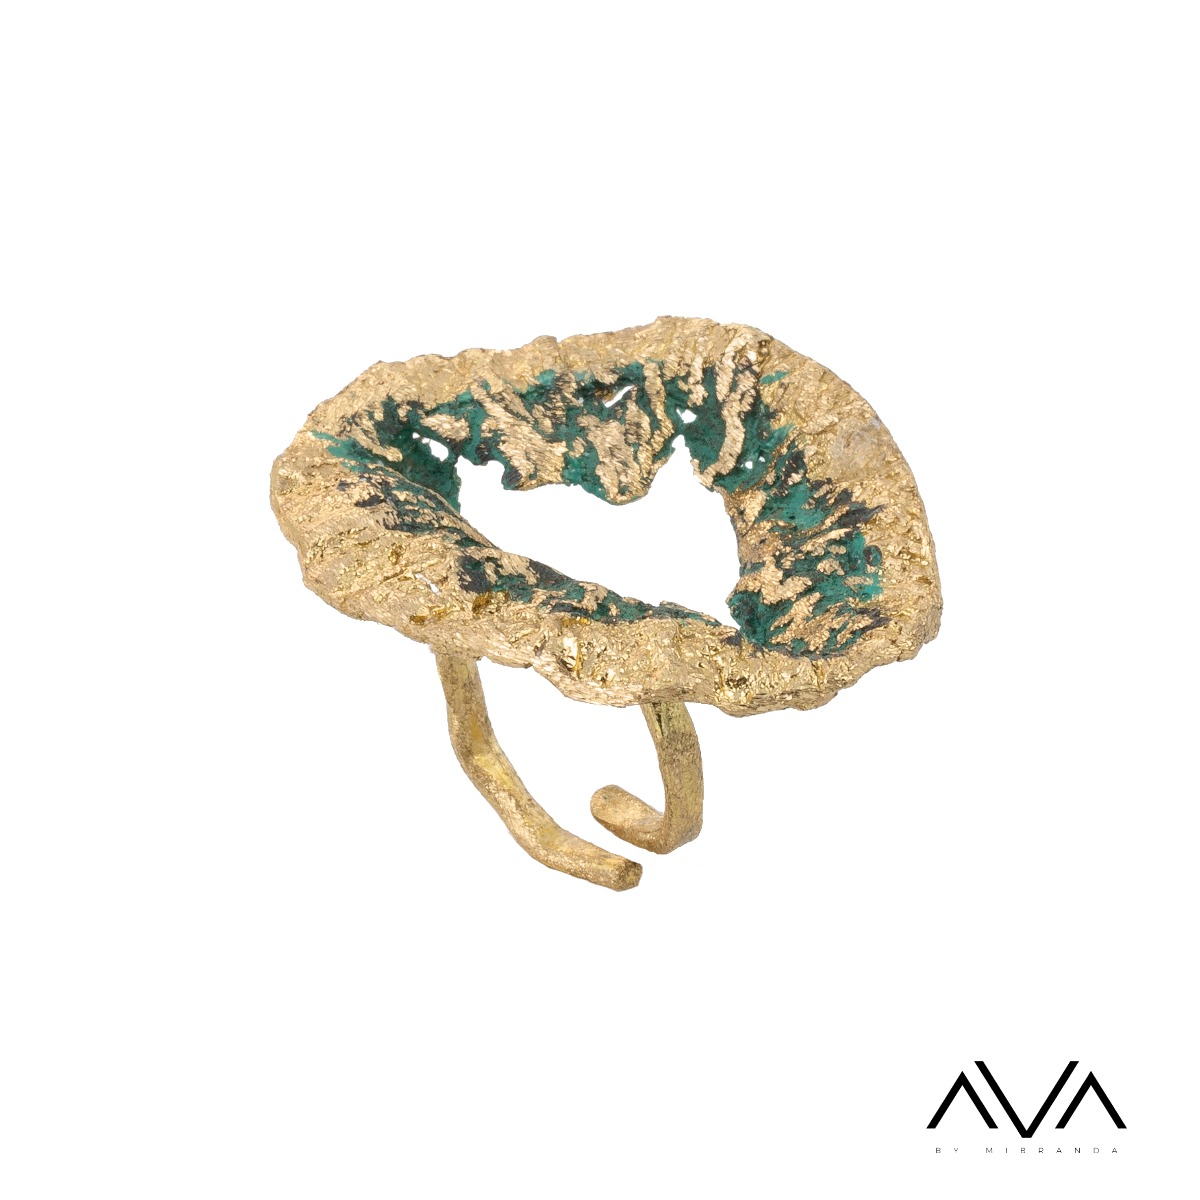 "Anillo ""EDAFOS"" AVA by Mibranda, color verde"